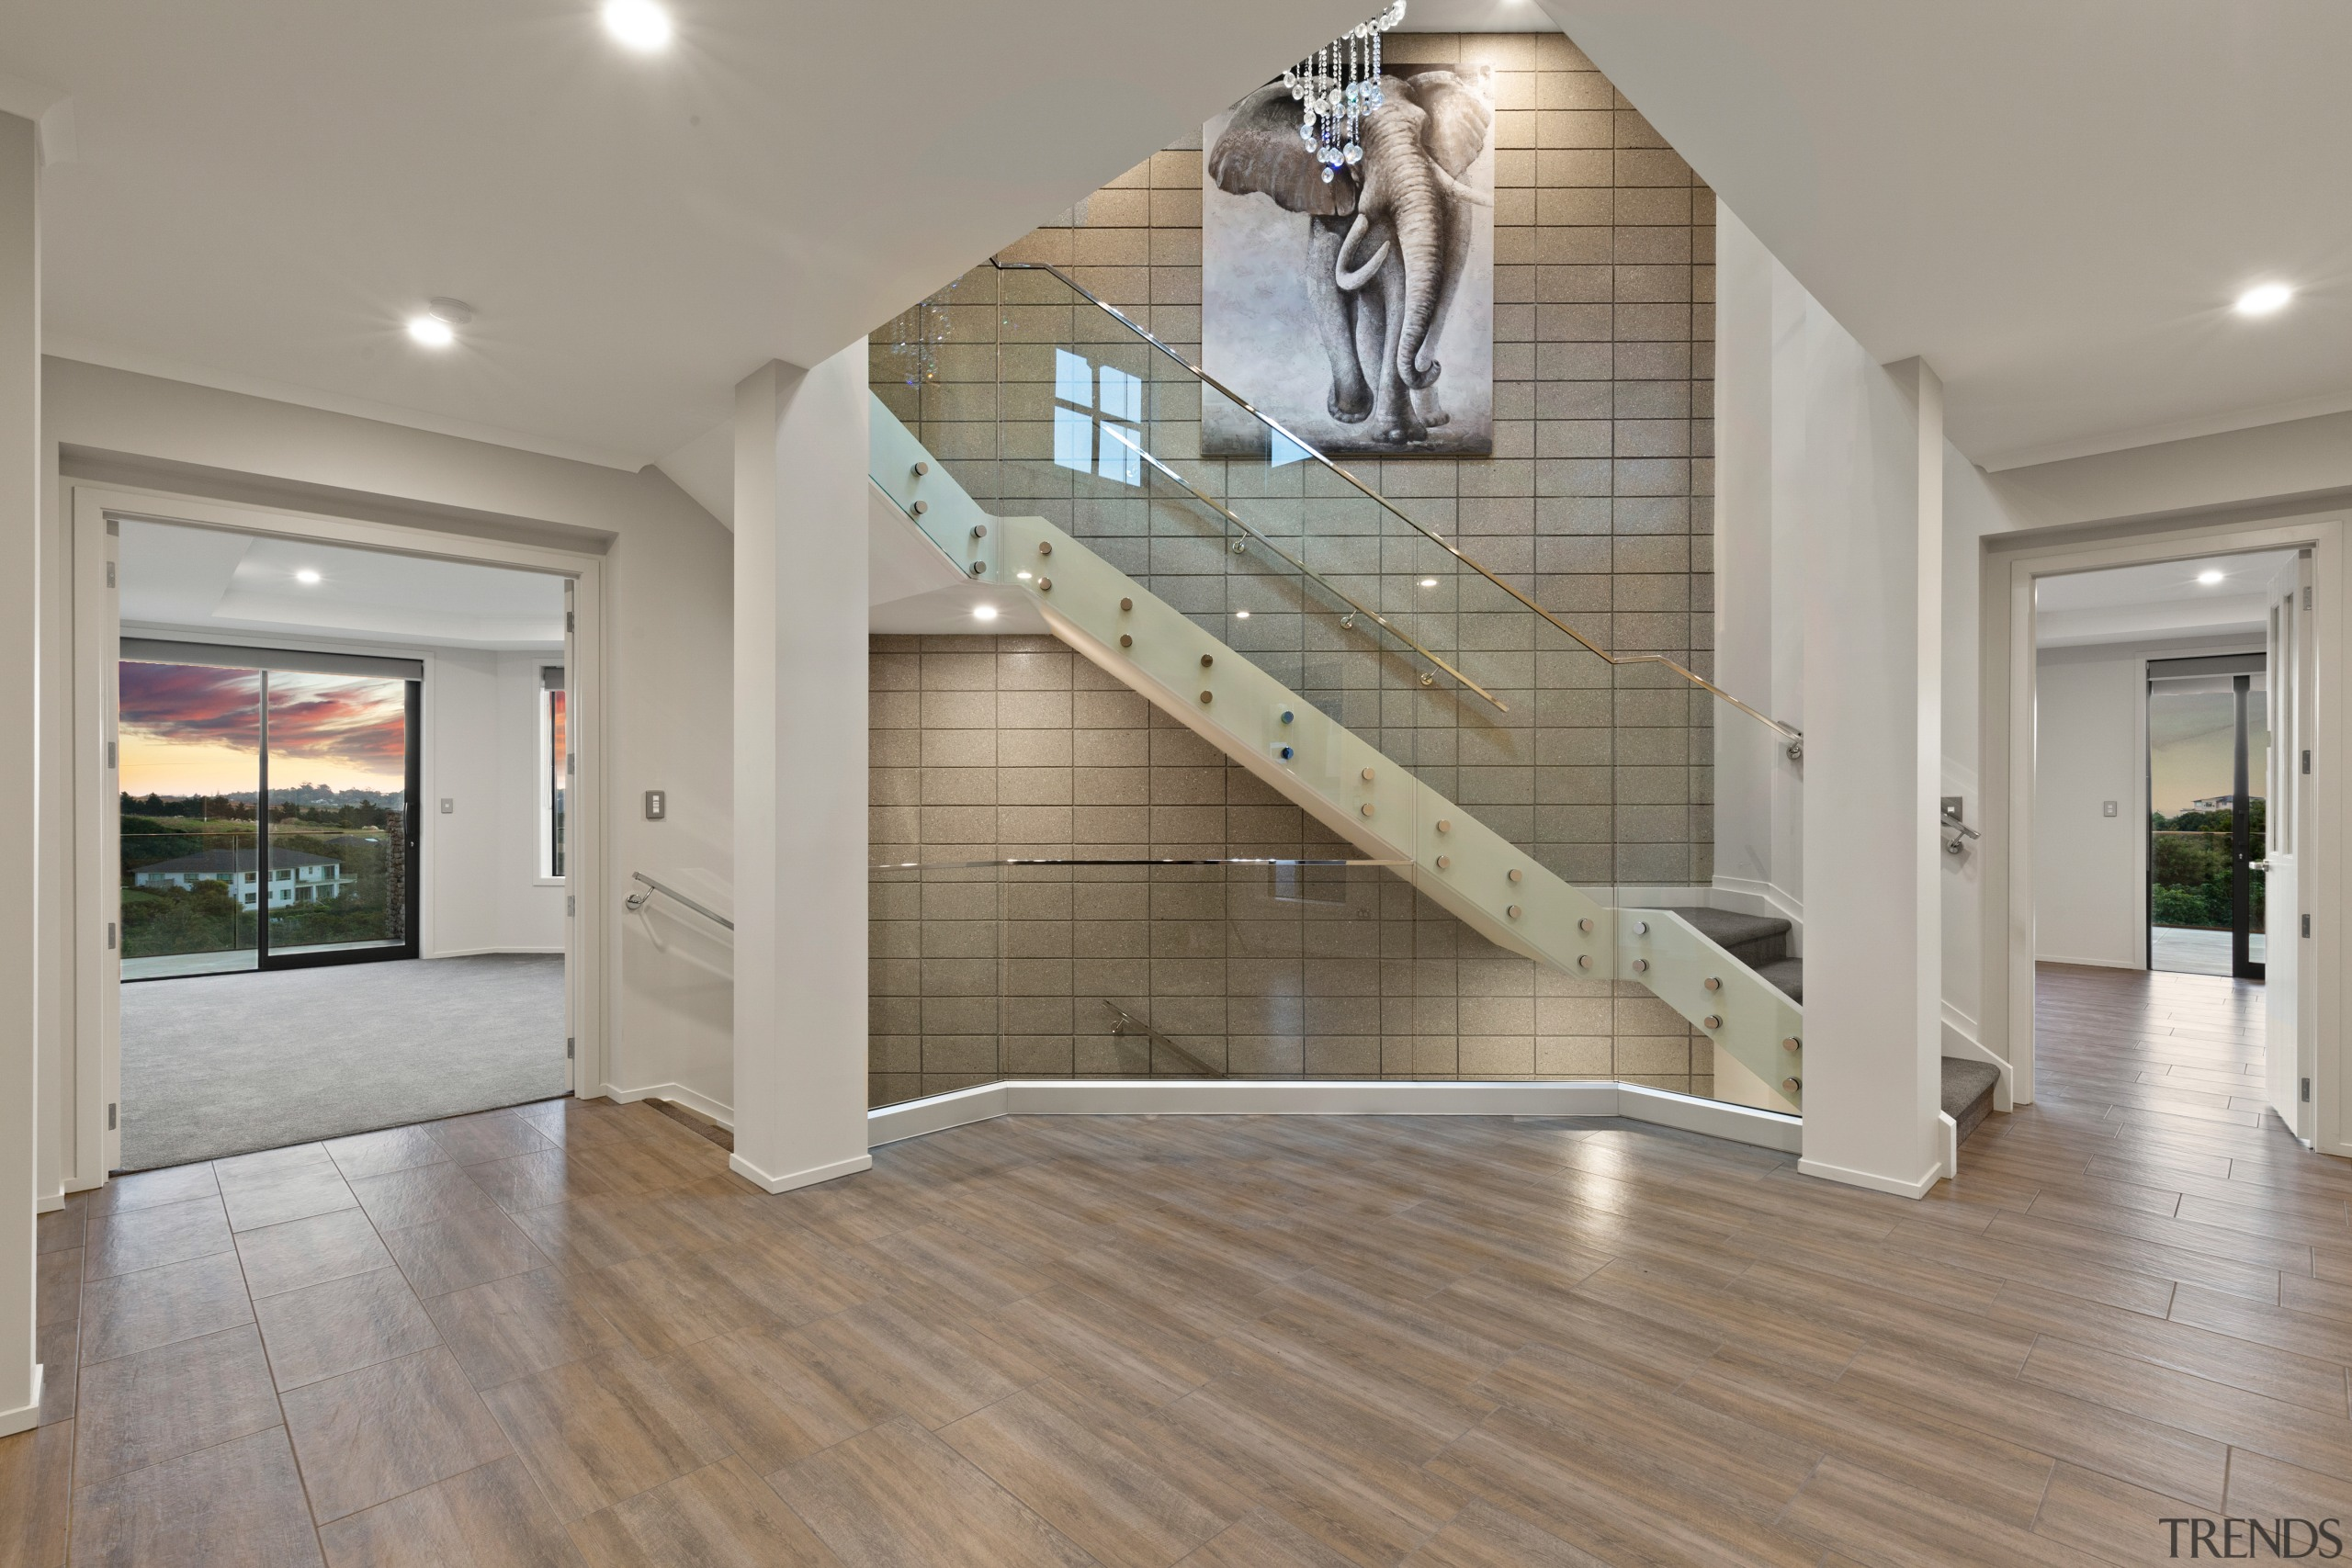 This spacious, modern three-level home, boasts 3m studs architecture, building, ceiling, estate, floor, flooring, glass, hall, hardwood, home, house, interior design, laminate flooring, living room, lobby, loft, property, real estate, room, stairs, wall, wood, wood flooring, gray